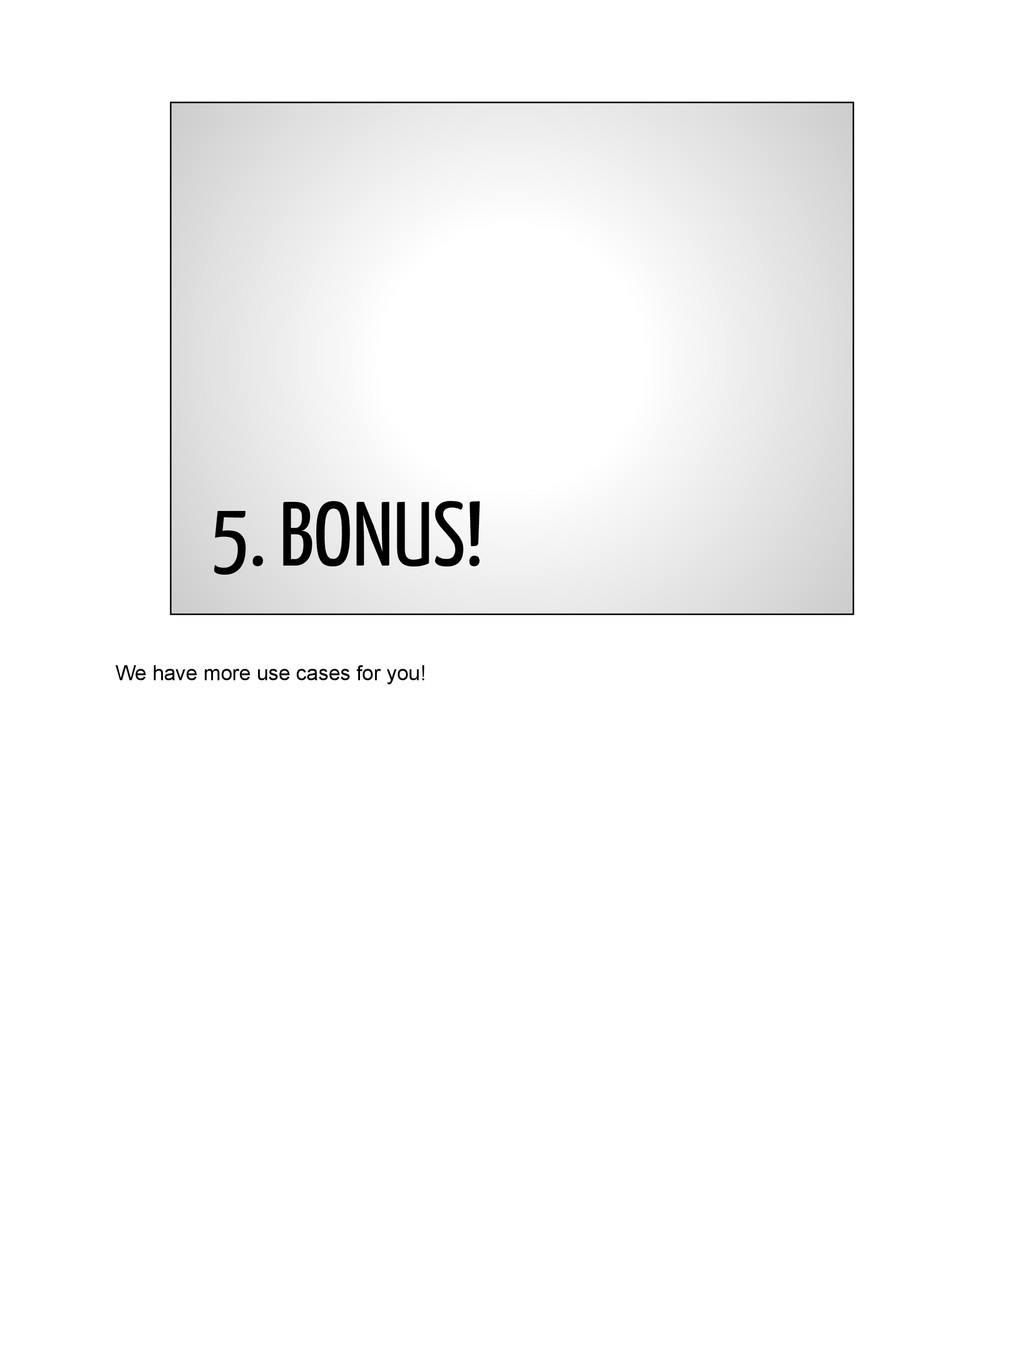 5. BONUS! We have more use cases for you!